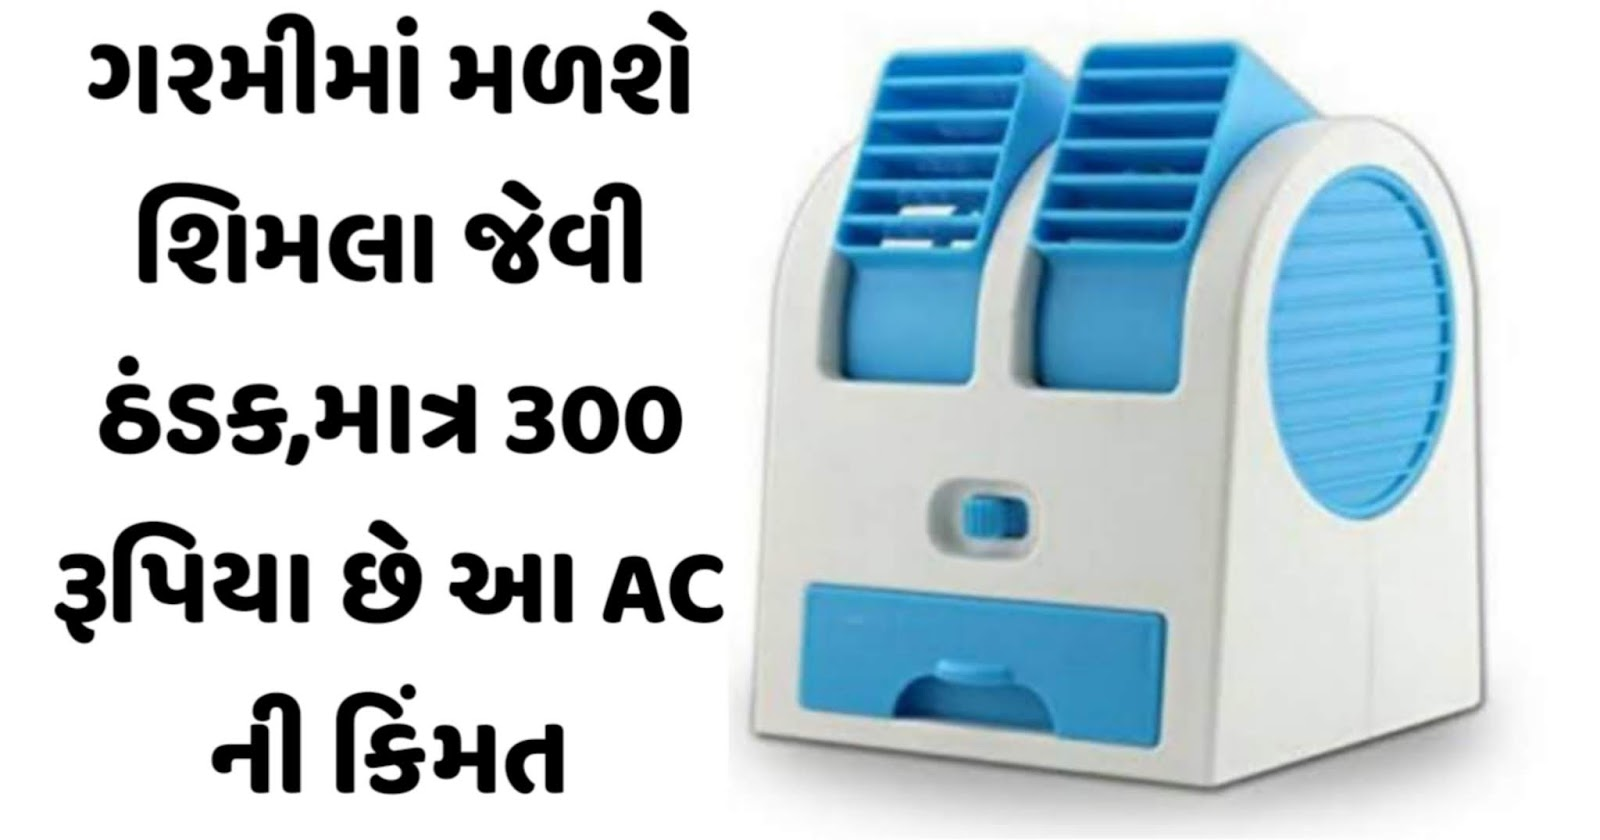 This Air Conditioner (AC) Price Only 300rs